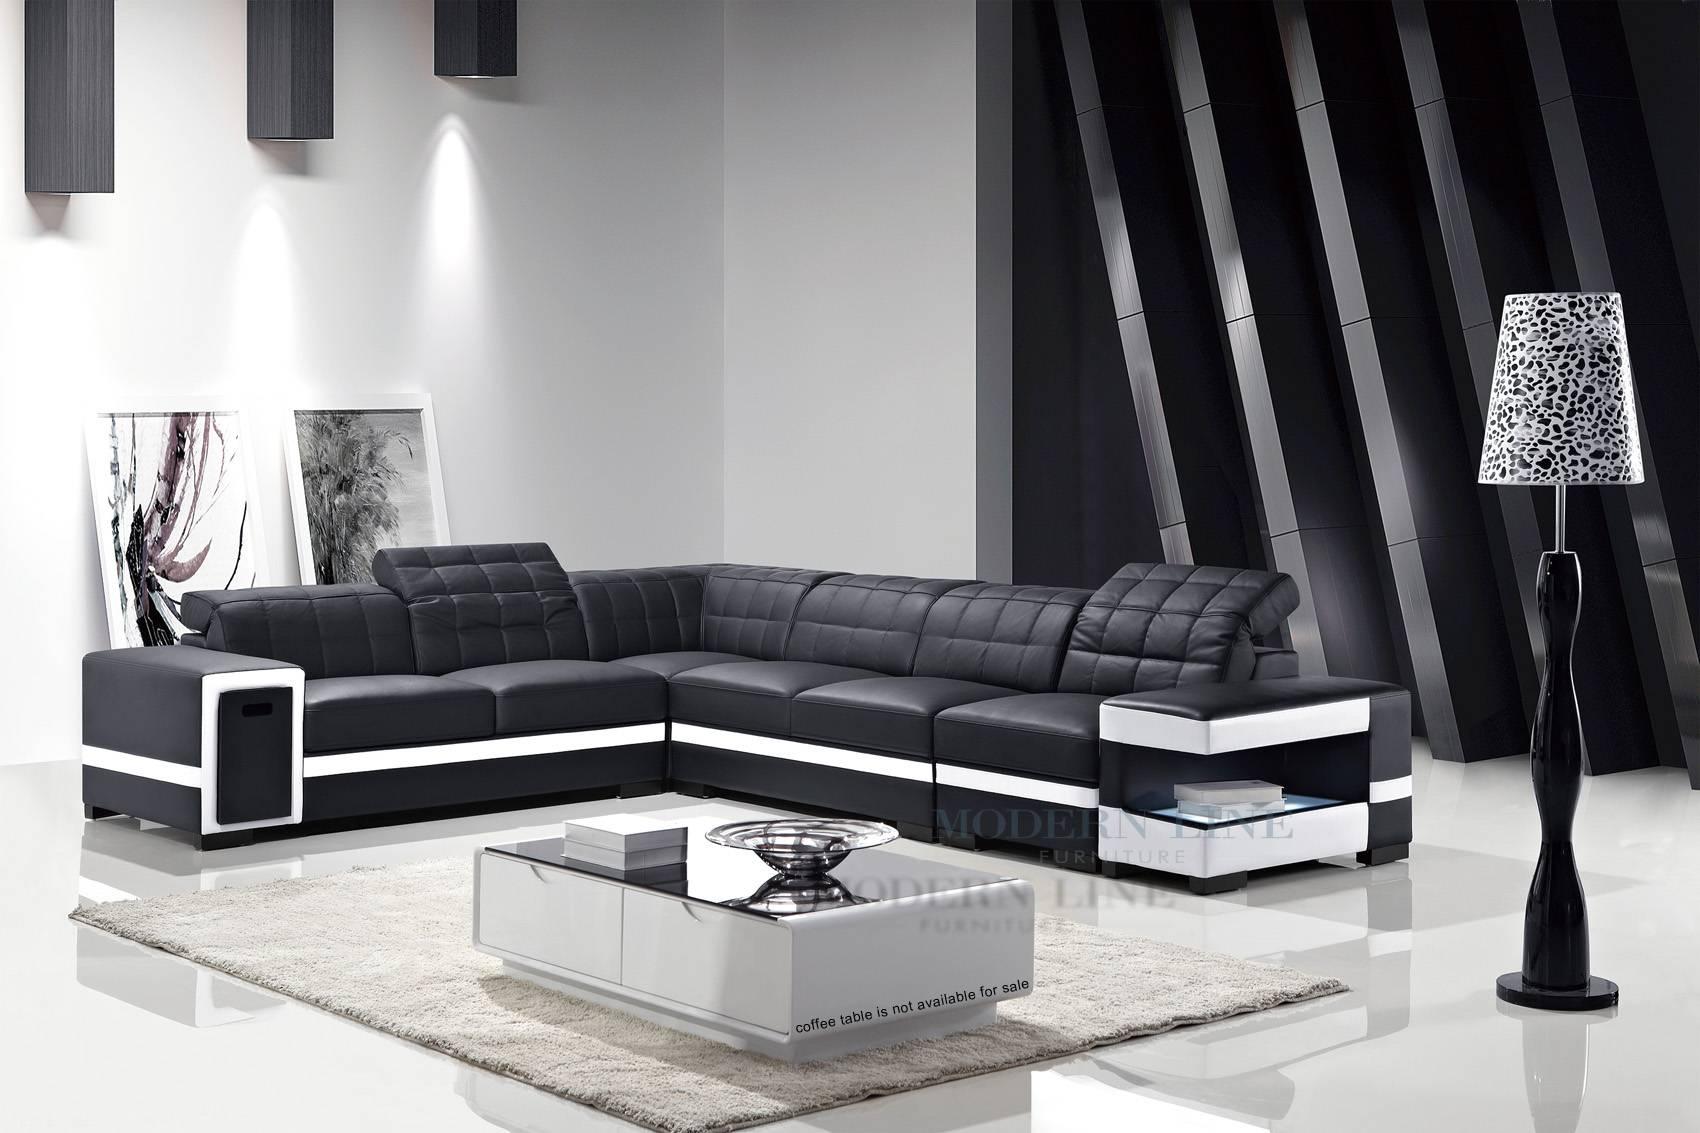 Top 30 of Black and White Sofas